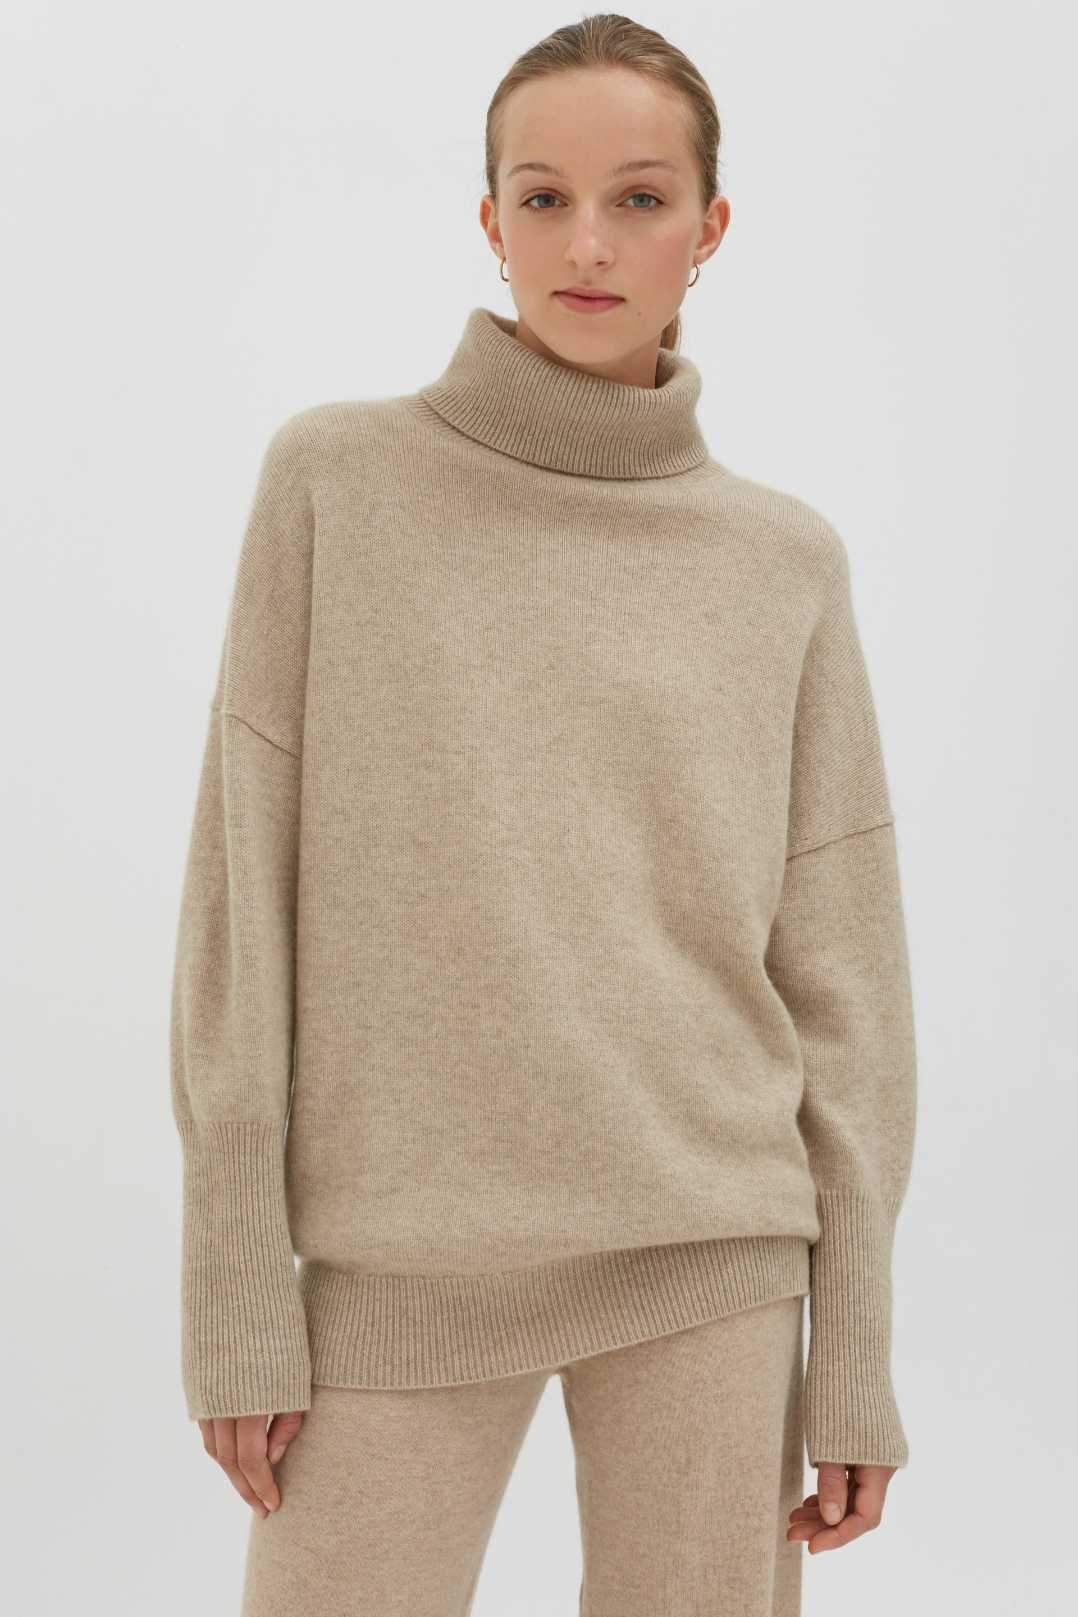 Oatmeal Cashmere Rollneck Sweater